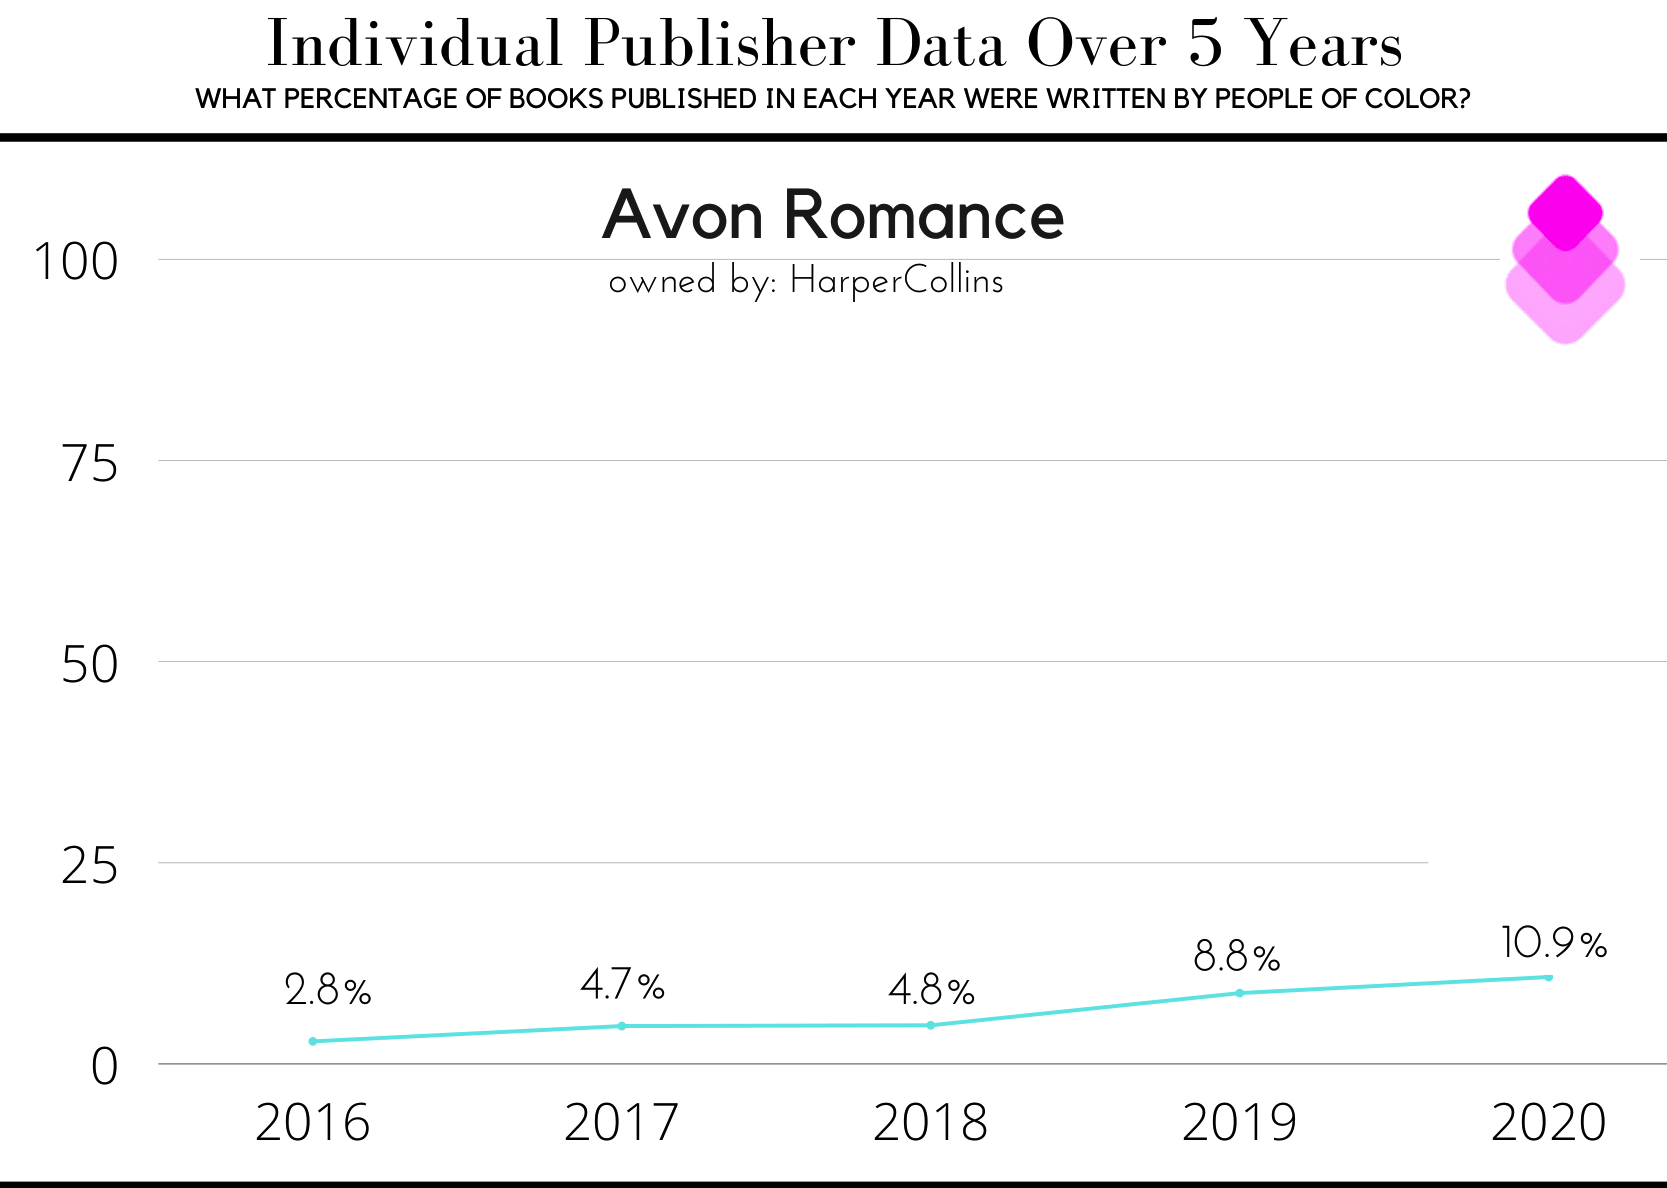 Figure 1: Screenshot of page 3 of the 2020 Diversity Report. The figure shows a graph titled: Individual Publisher Data Overview. What Percentage of Books Published in Each Year Were Written by People of Color? The graph shows percentages from 2016 to 2020 for Avon Romance.